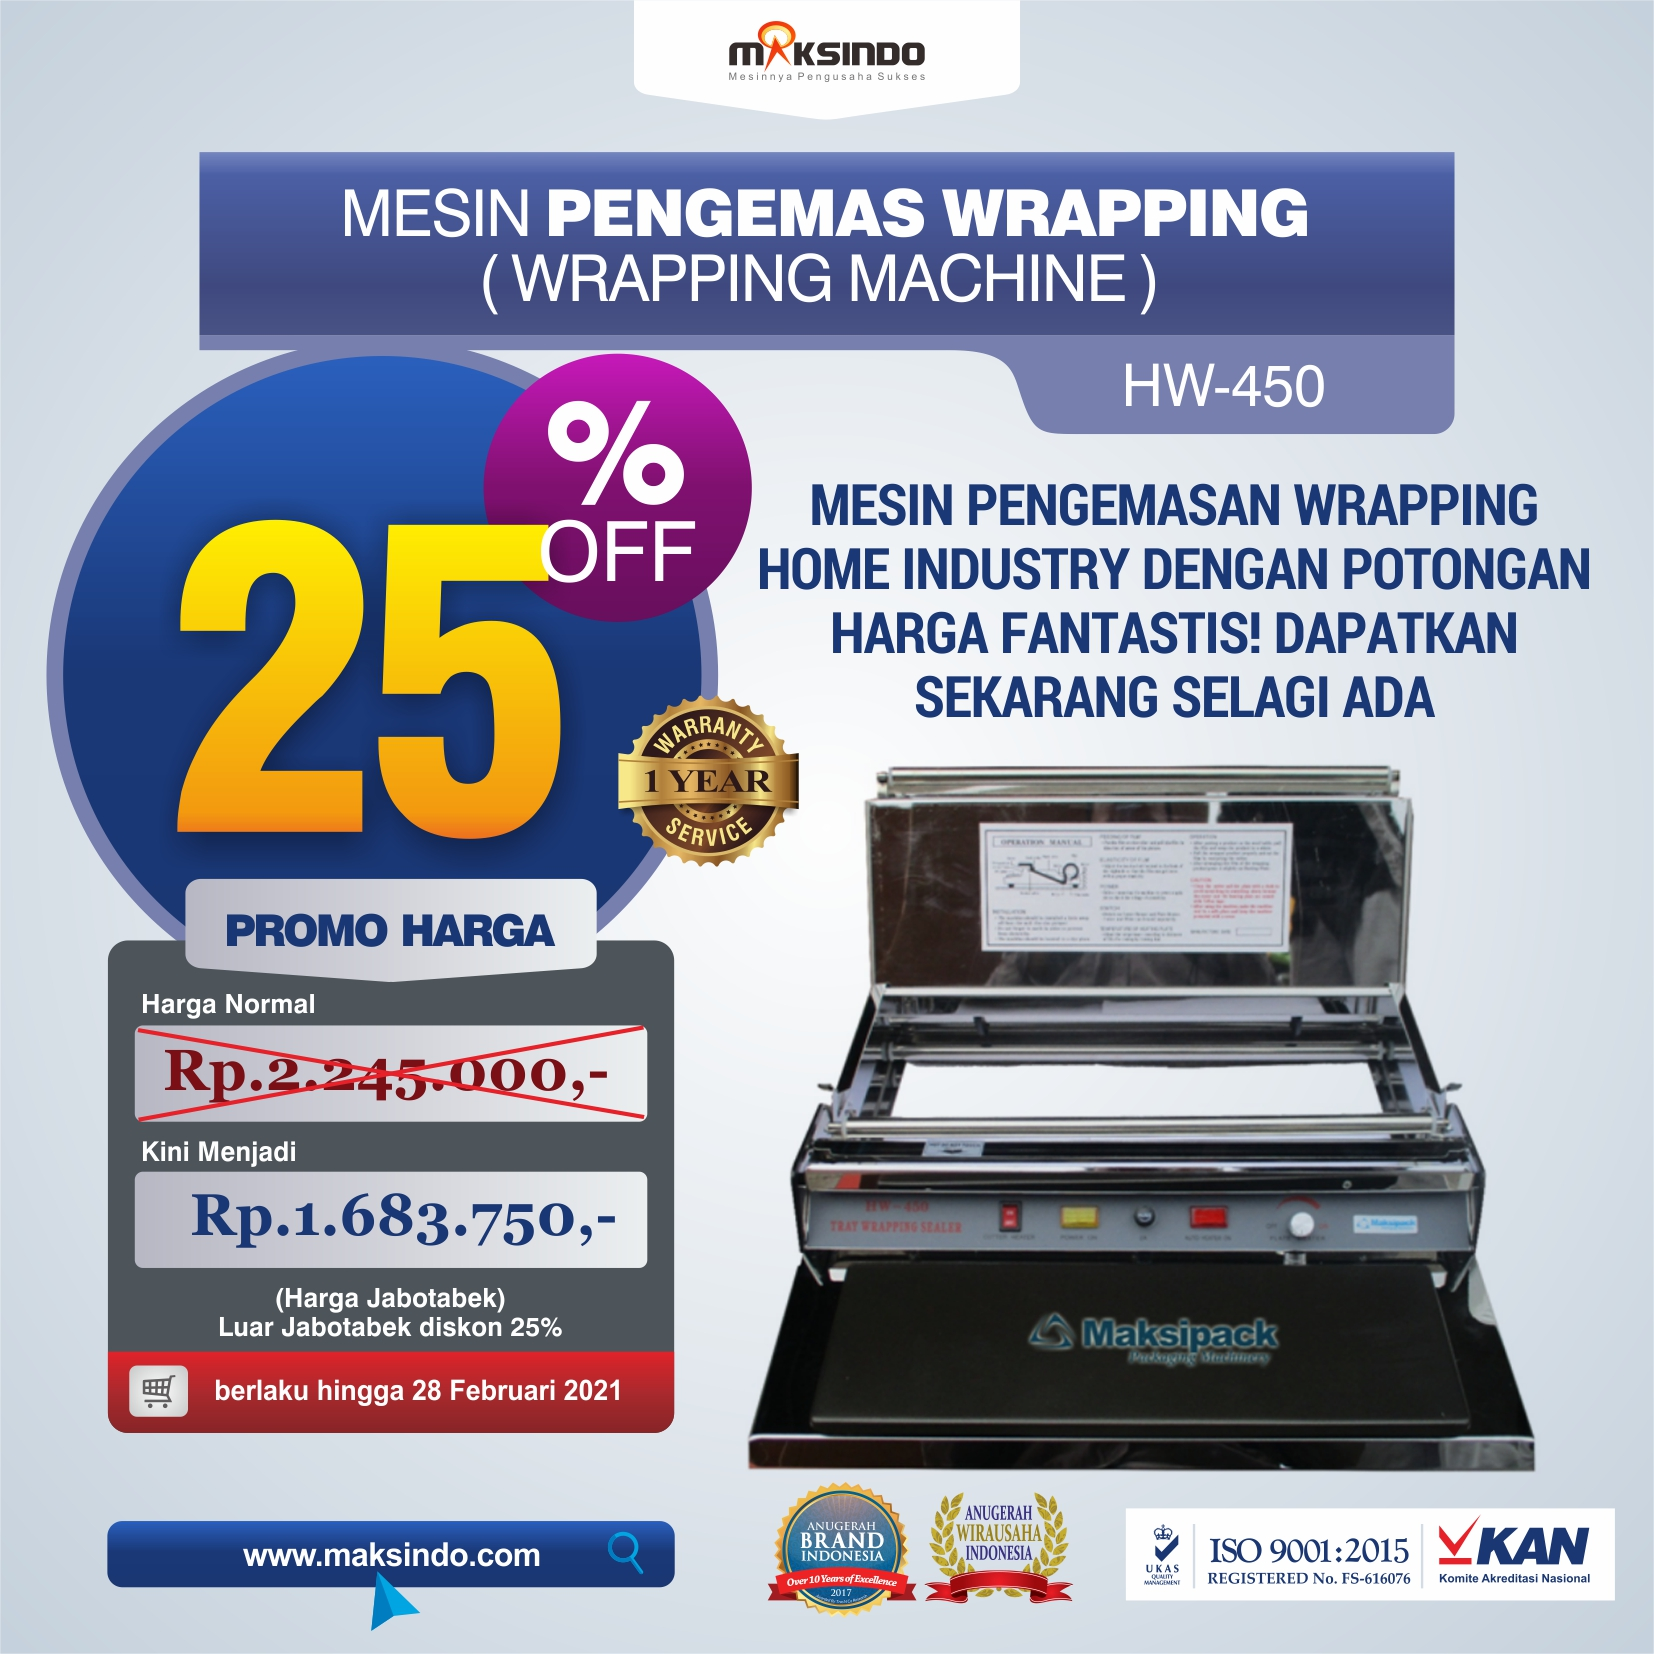 Mesin Pengemas Wrapping HW-450